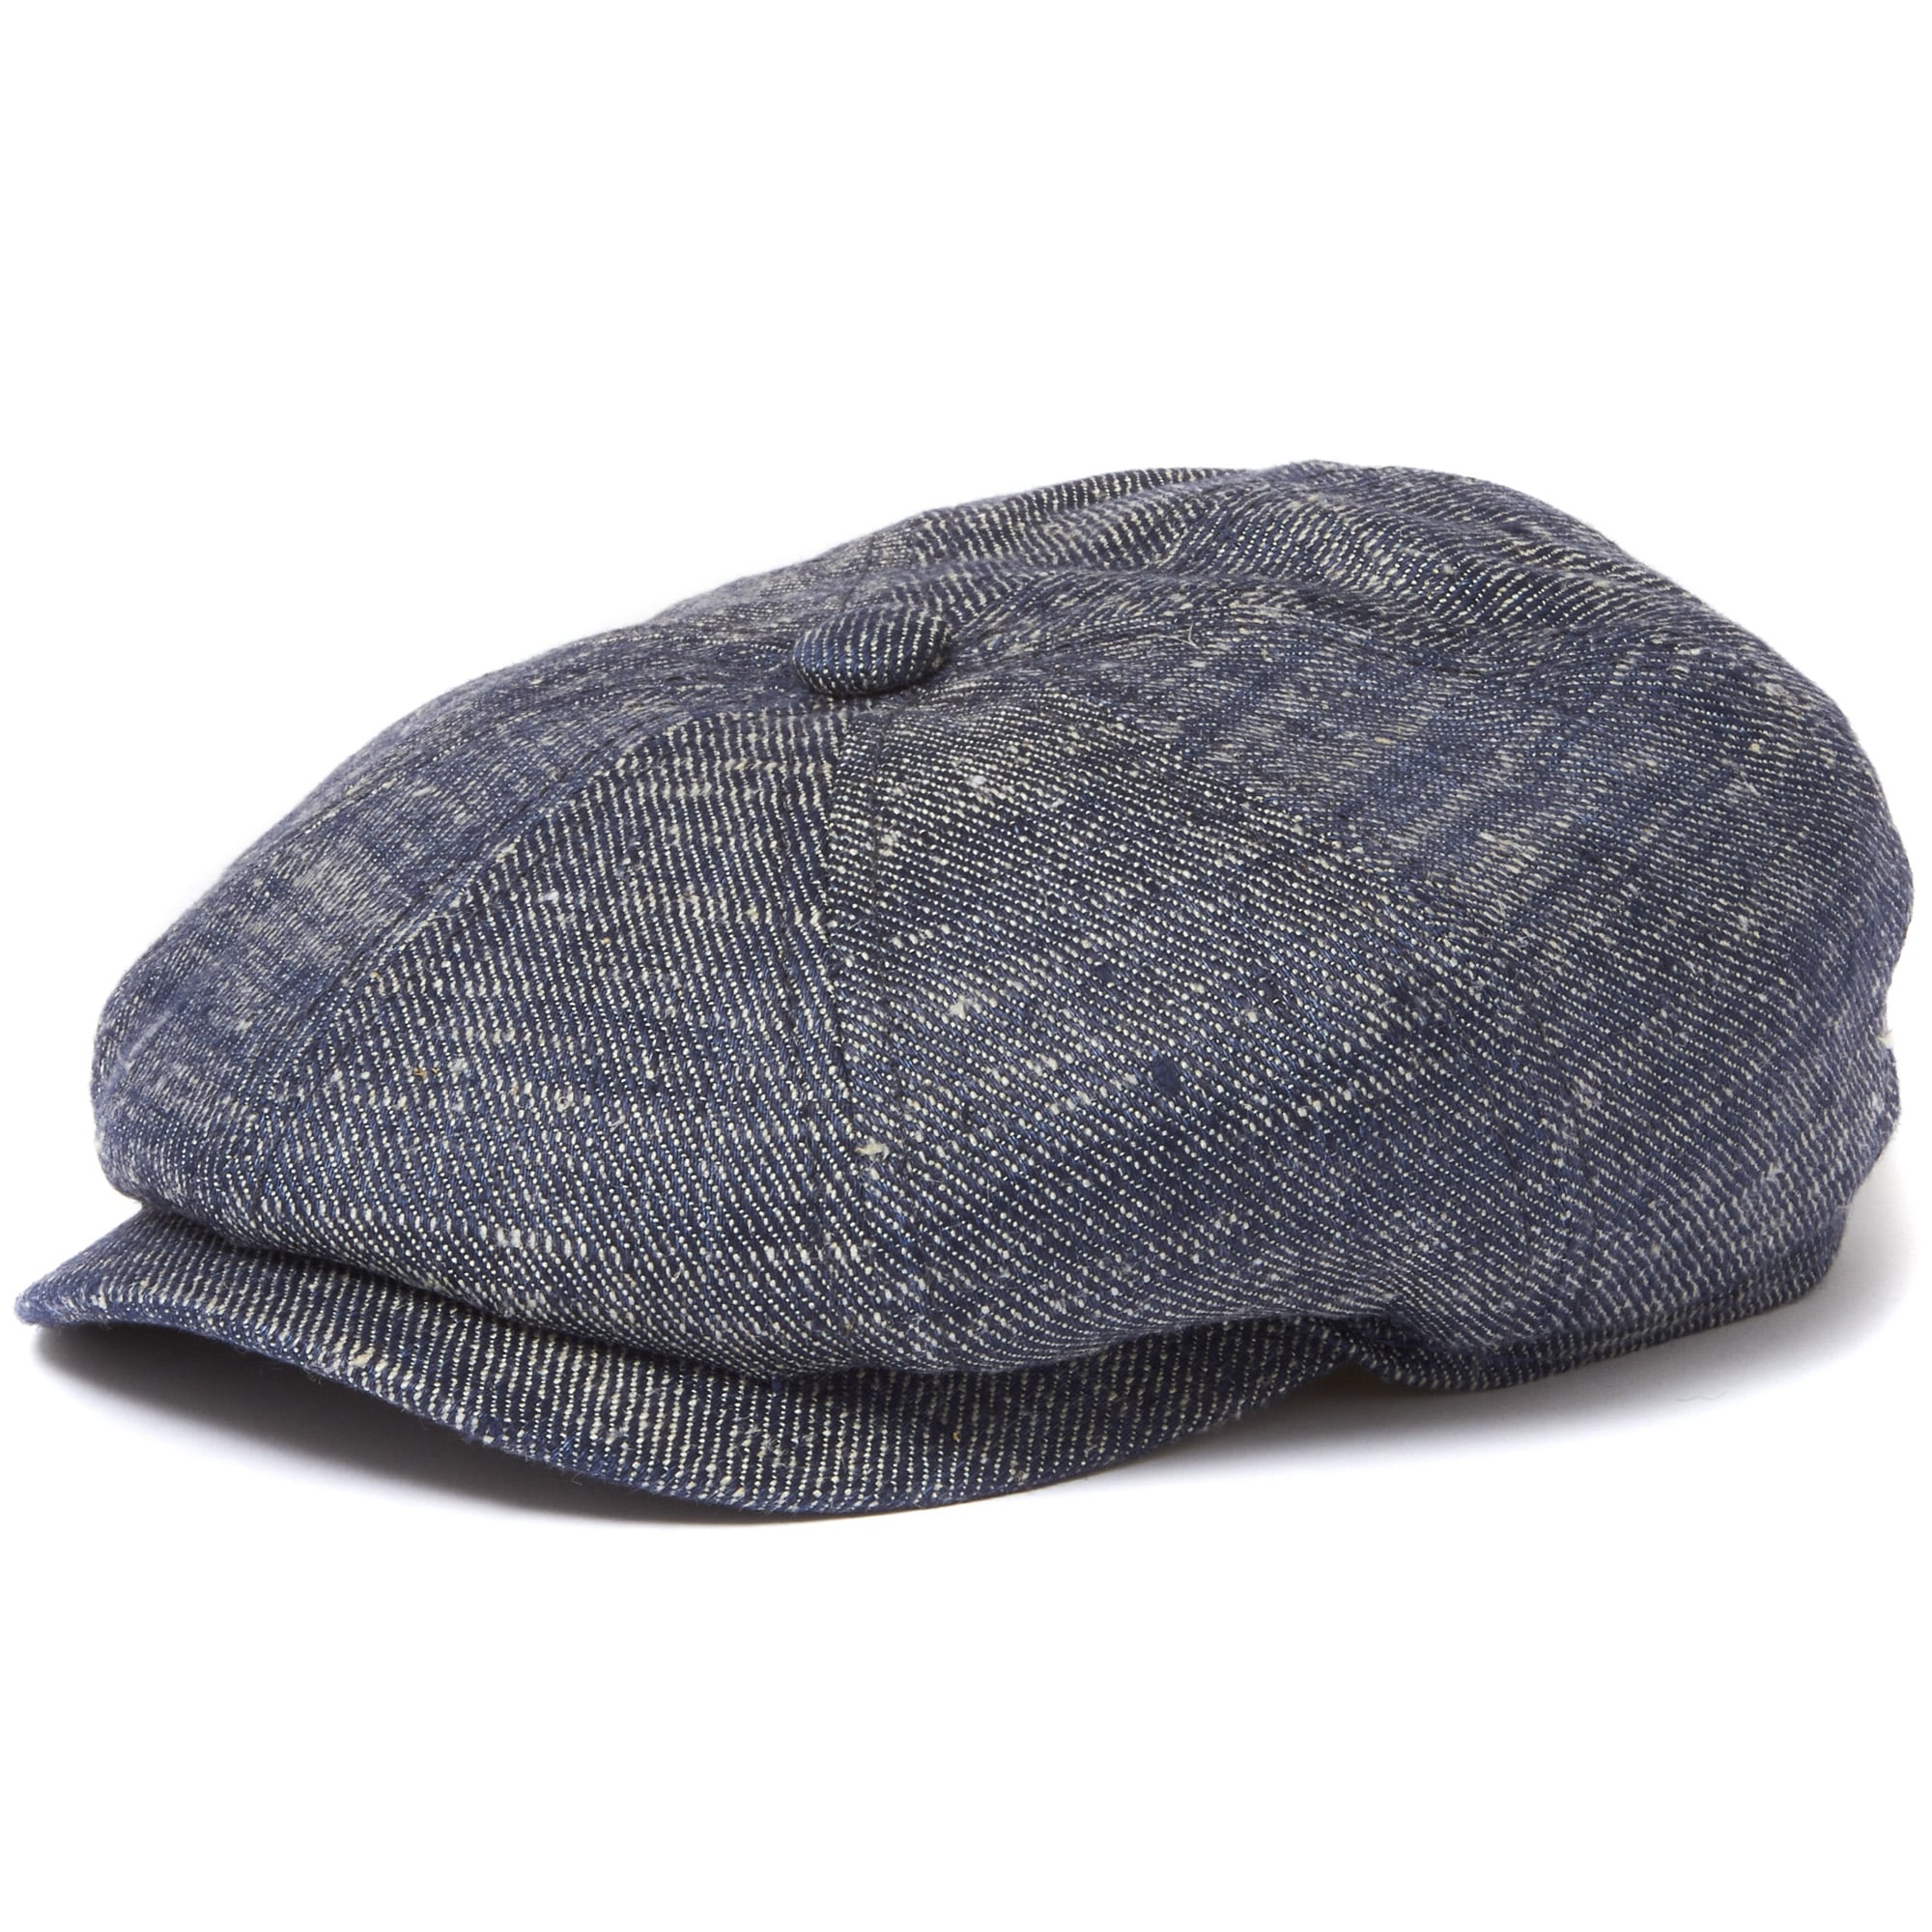 Stetson Navy Linen and Silk Denim Newsboy Cap  d0afd126b65